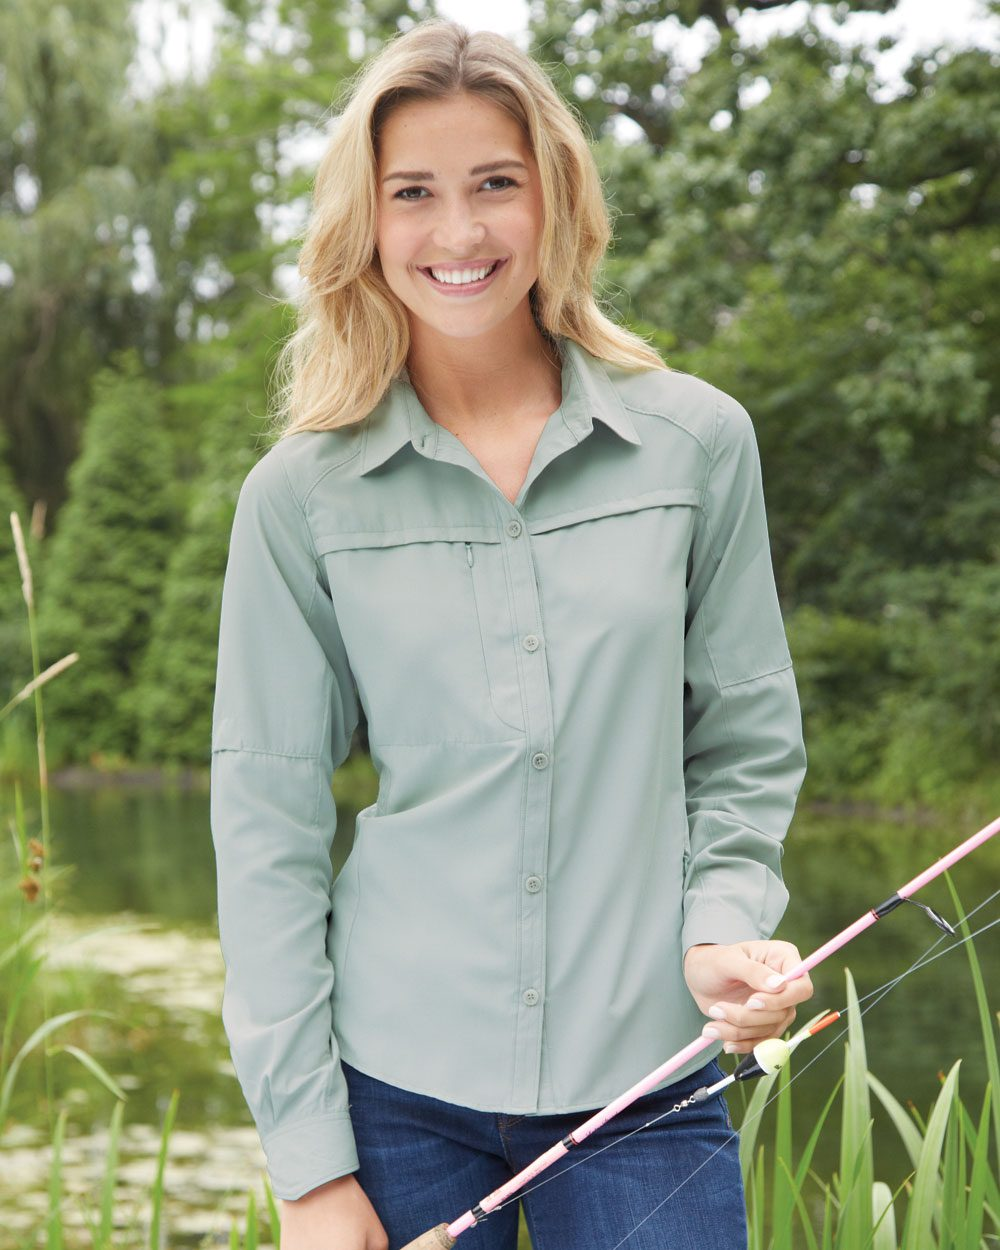 DRI DUCK Ladies' Fishing Shirt - 8407